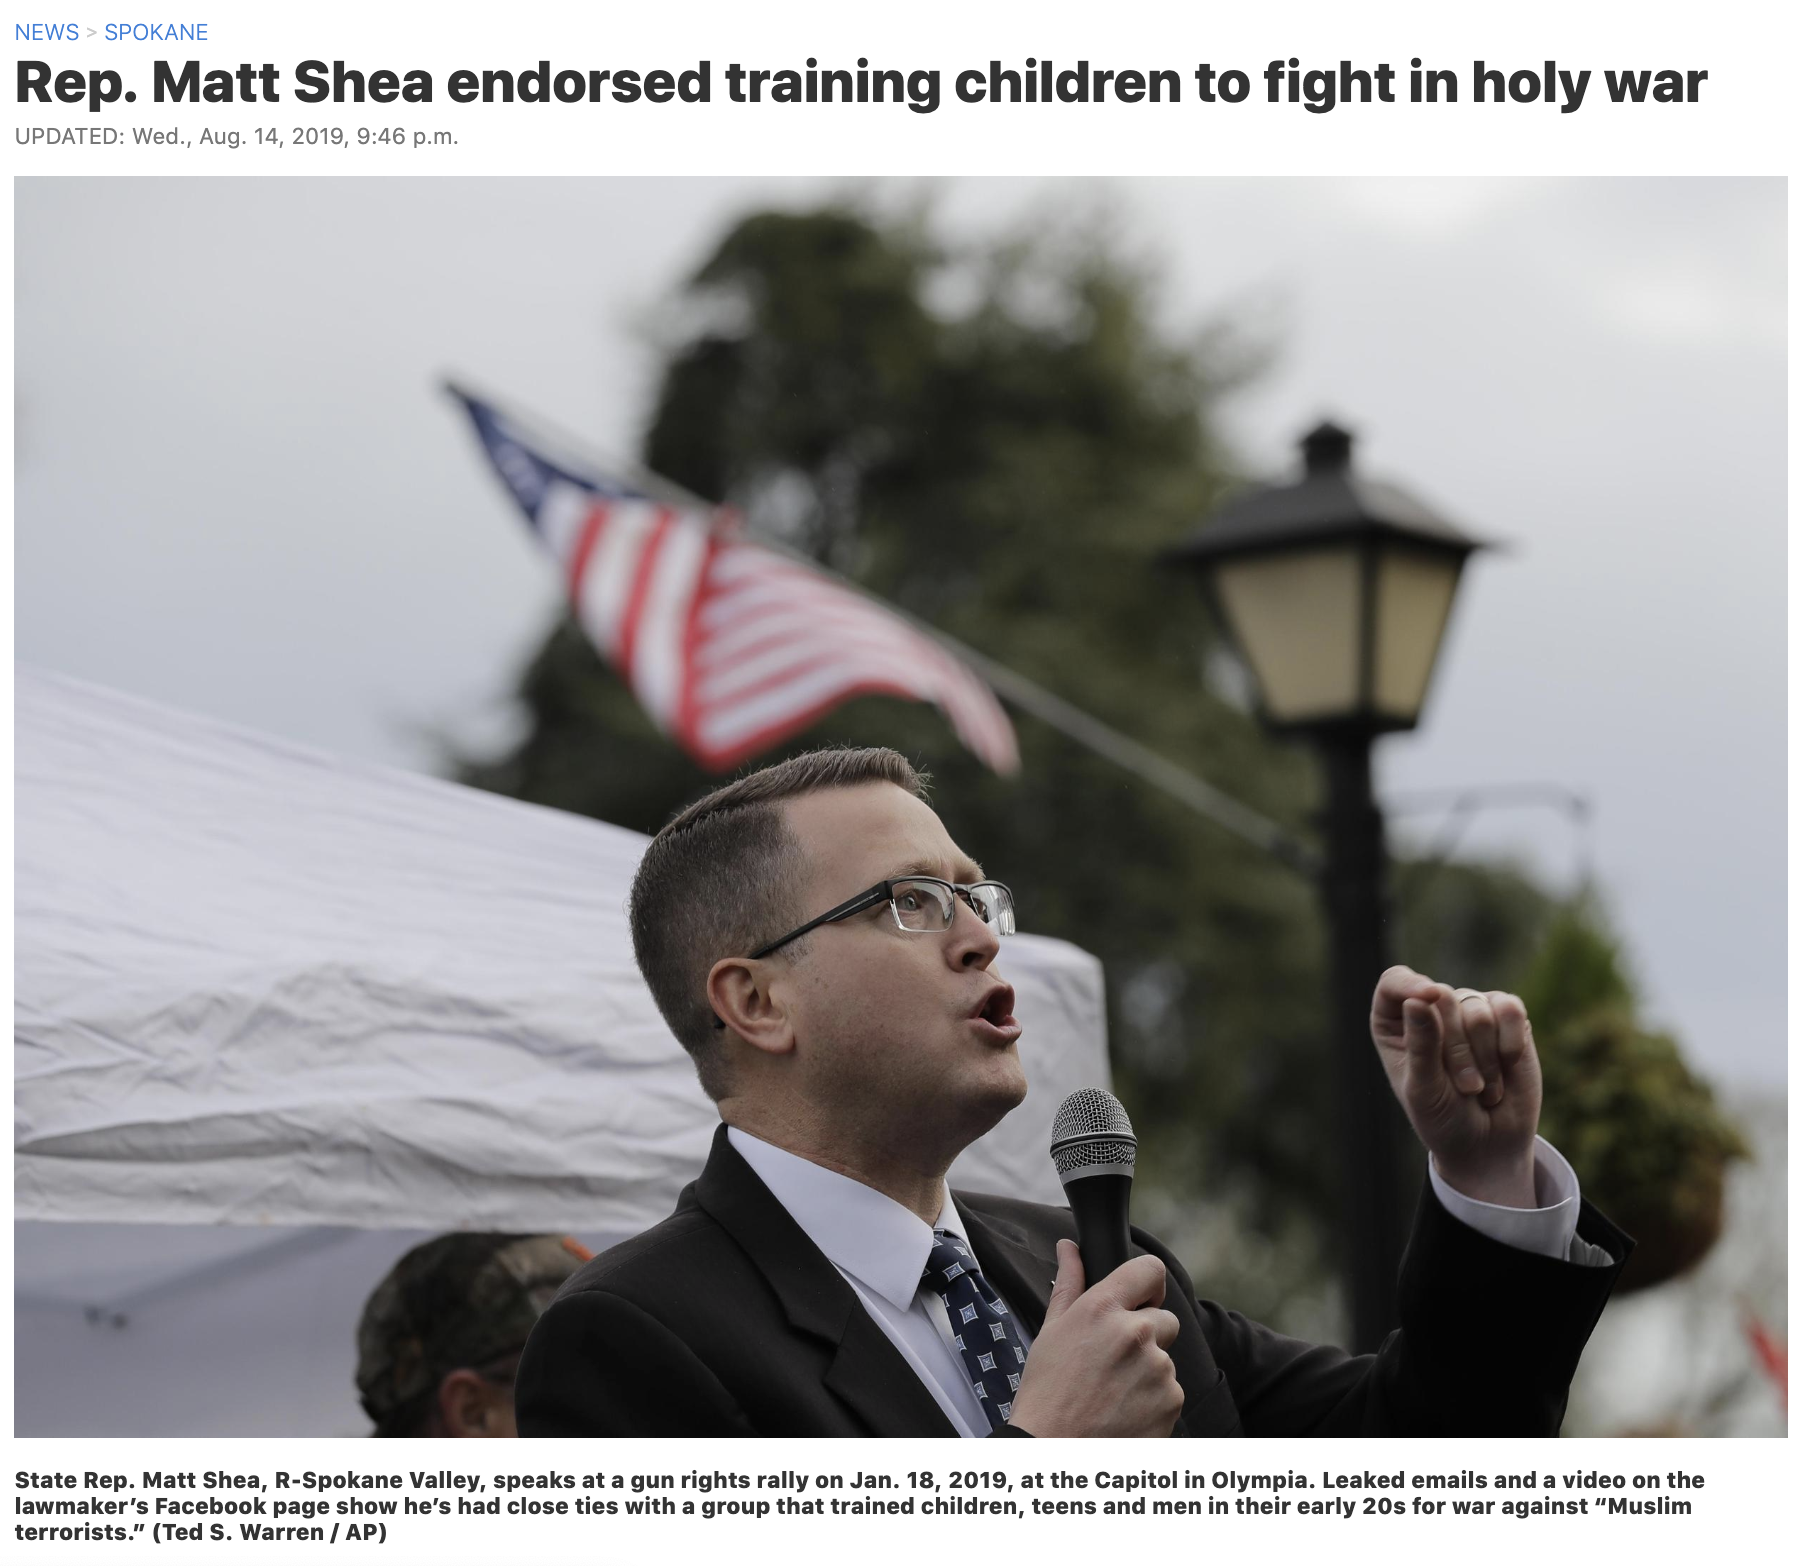 "A week before his re-election last year, state Rep. Matt Shea denied that a leaked manifesto he wrote was a road map for a holy war, one that would pit conservative Christian ""patriots"" against Muslim and Marxist ""terrorists.""  Rather, Shea insisted,  the document titled ""Biblical Basis for War""  contained notes for a scholarly sermon on war in the Old Testament.  But newly leaked emails,  first reported by The Guardian on Wednesday , as well as a video on Shea's public Facebook page, reveal the Spokane Valley lawmaker has had close ties with a group called Team Rugged that trained children, teens and men in their early 20s for religious combat.  READ FULL STORY HERE"